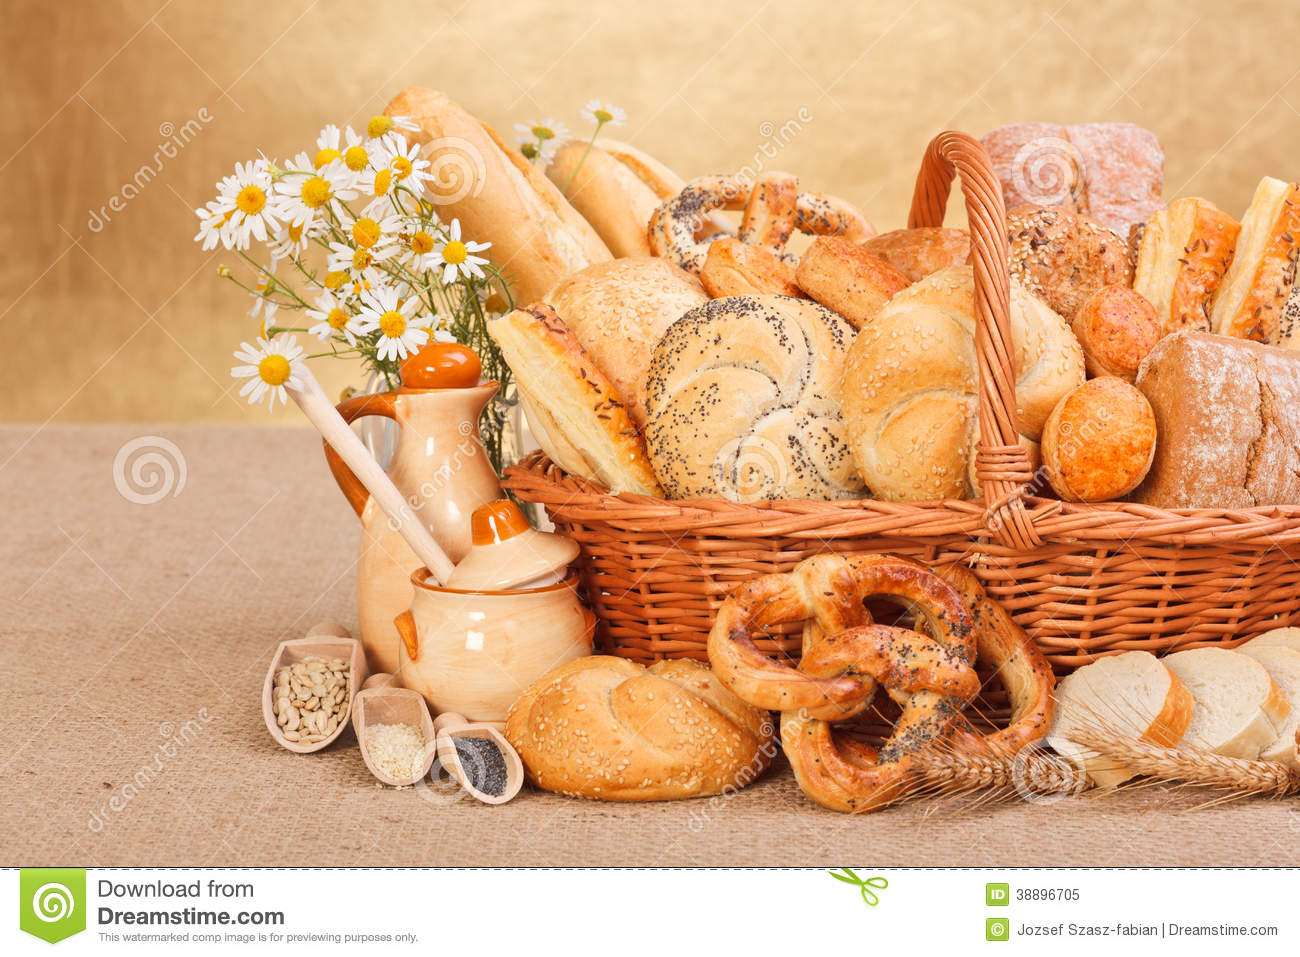 Fresh bakery products and ingredients stock image image for Bakery decoration